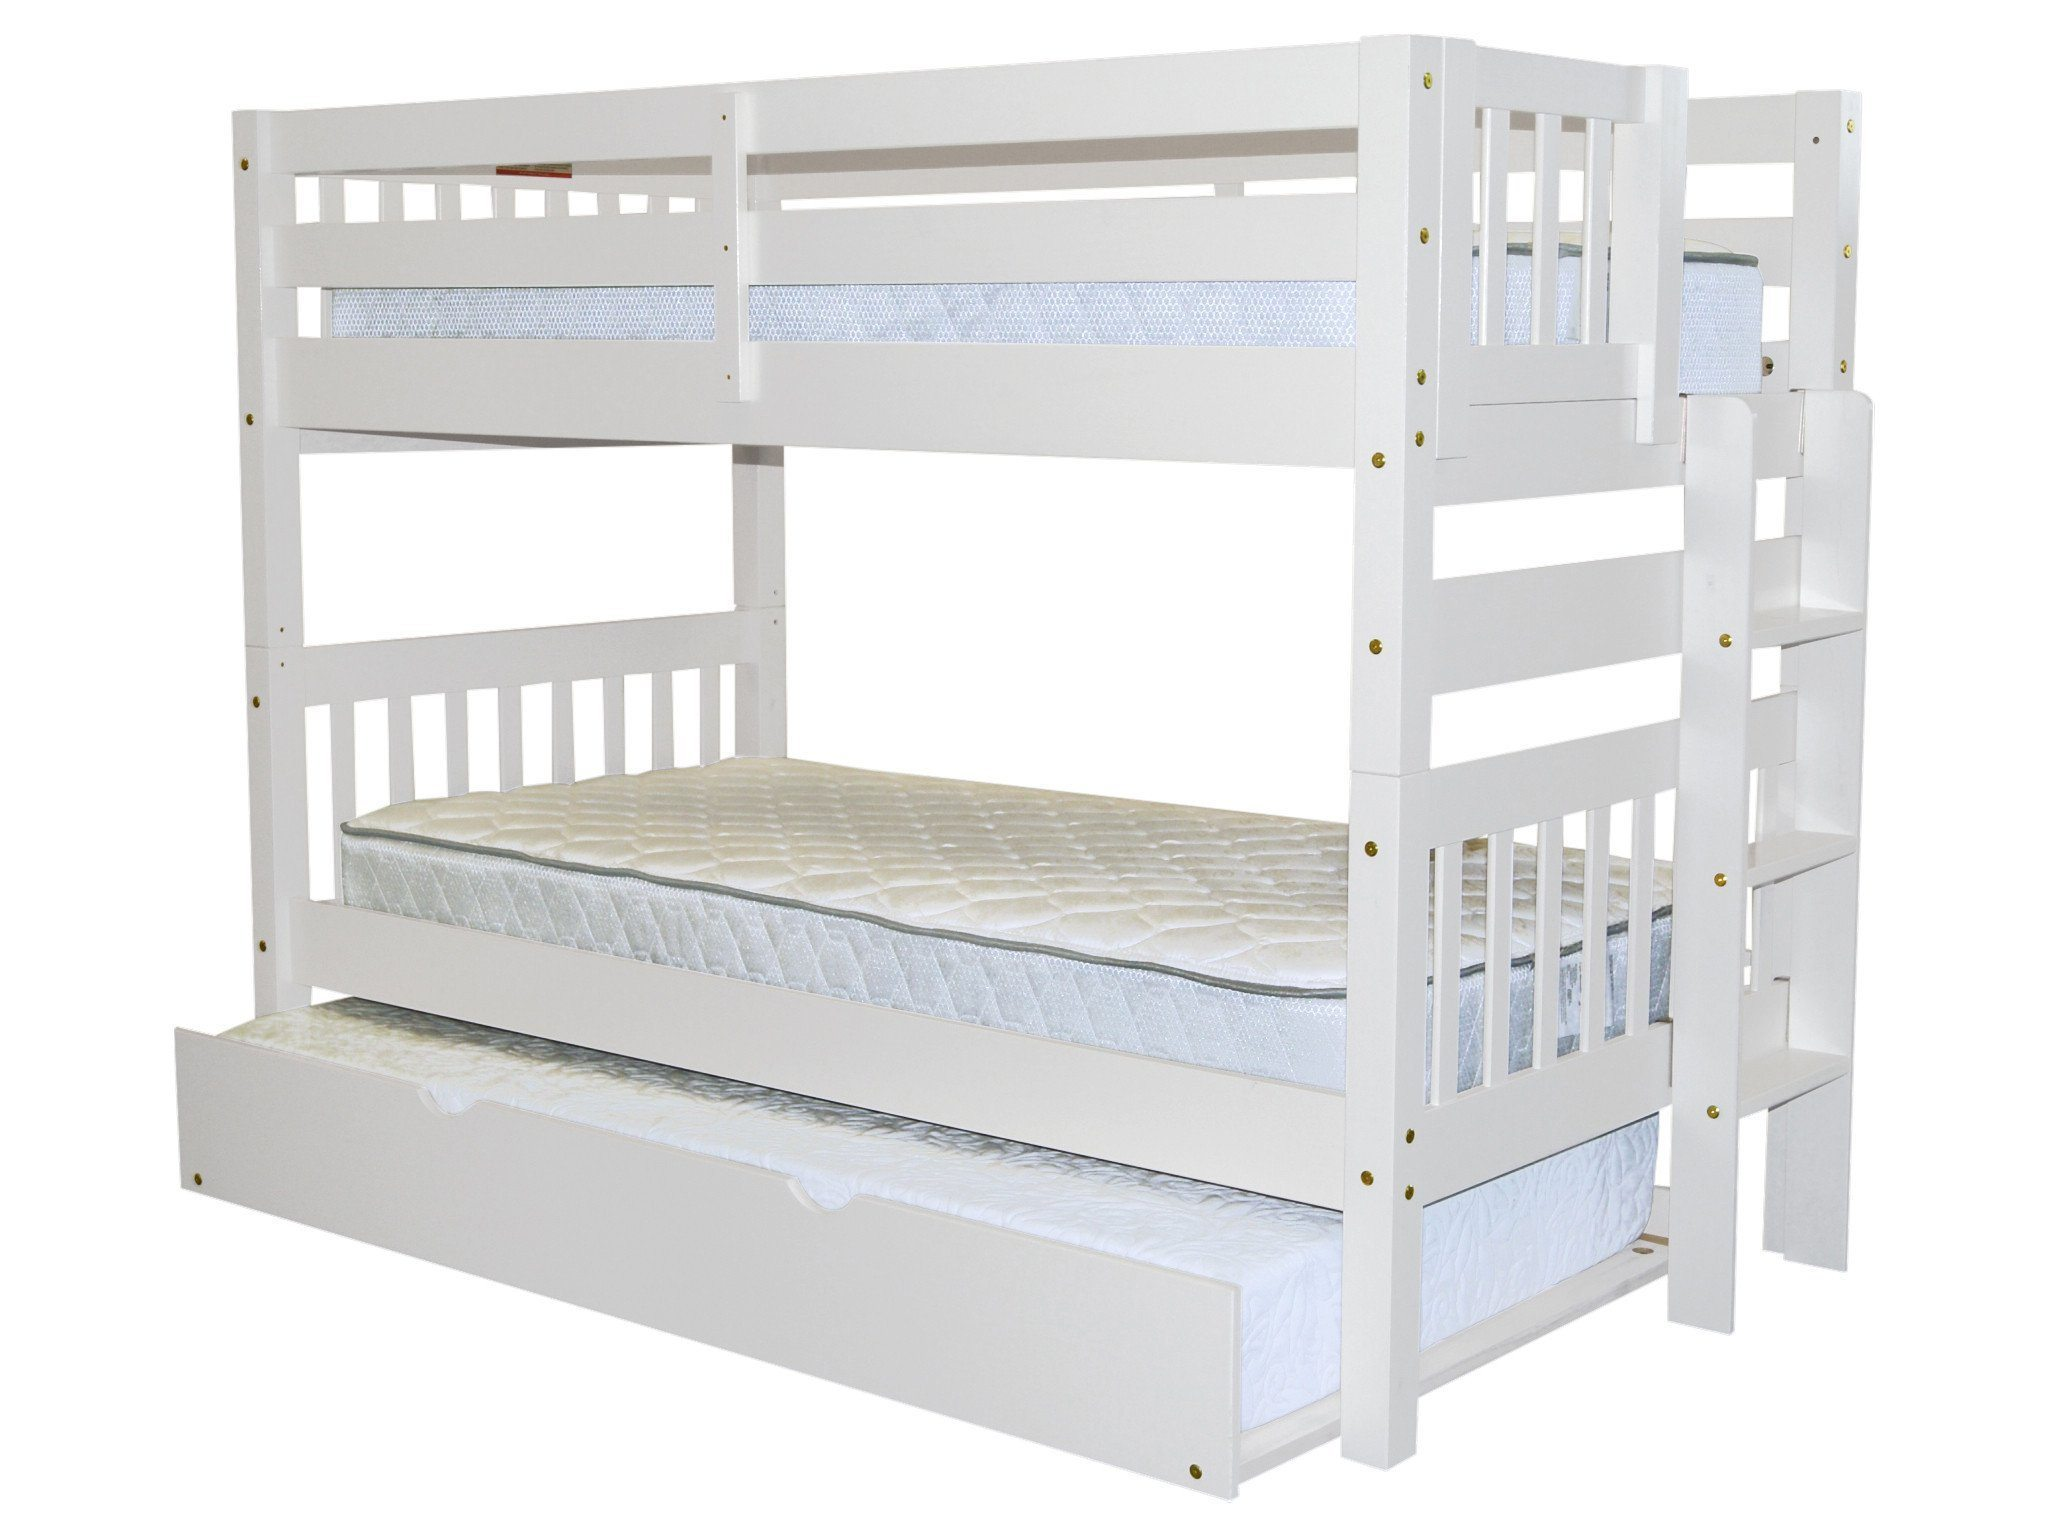 Bedz King Bunk Beds Twin over Twin Mission Style with End Ladder and a Twin Trundle, White by